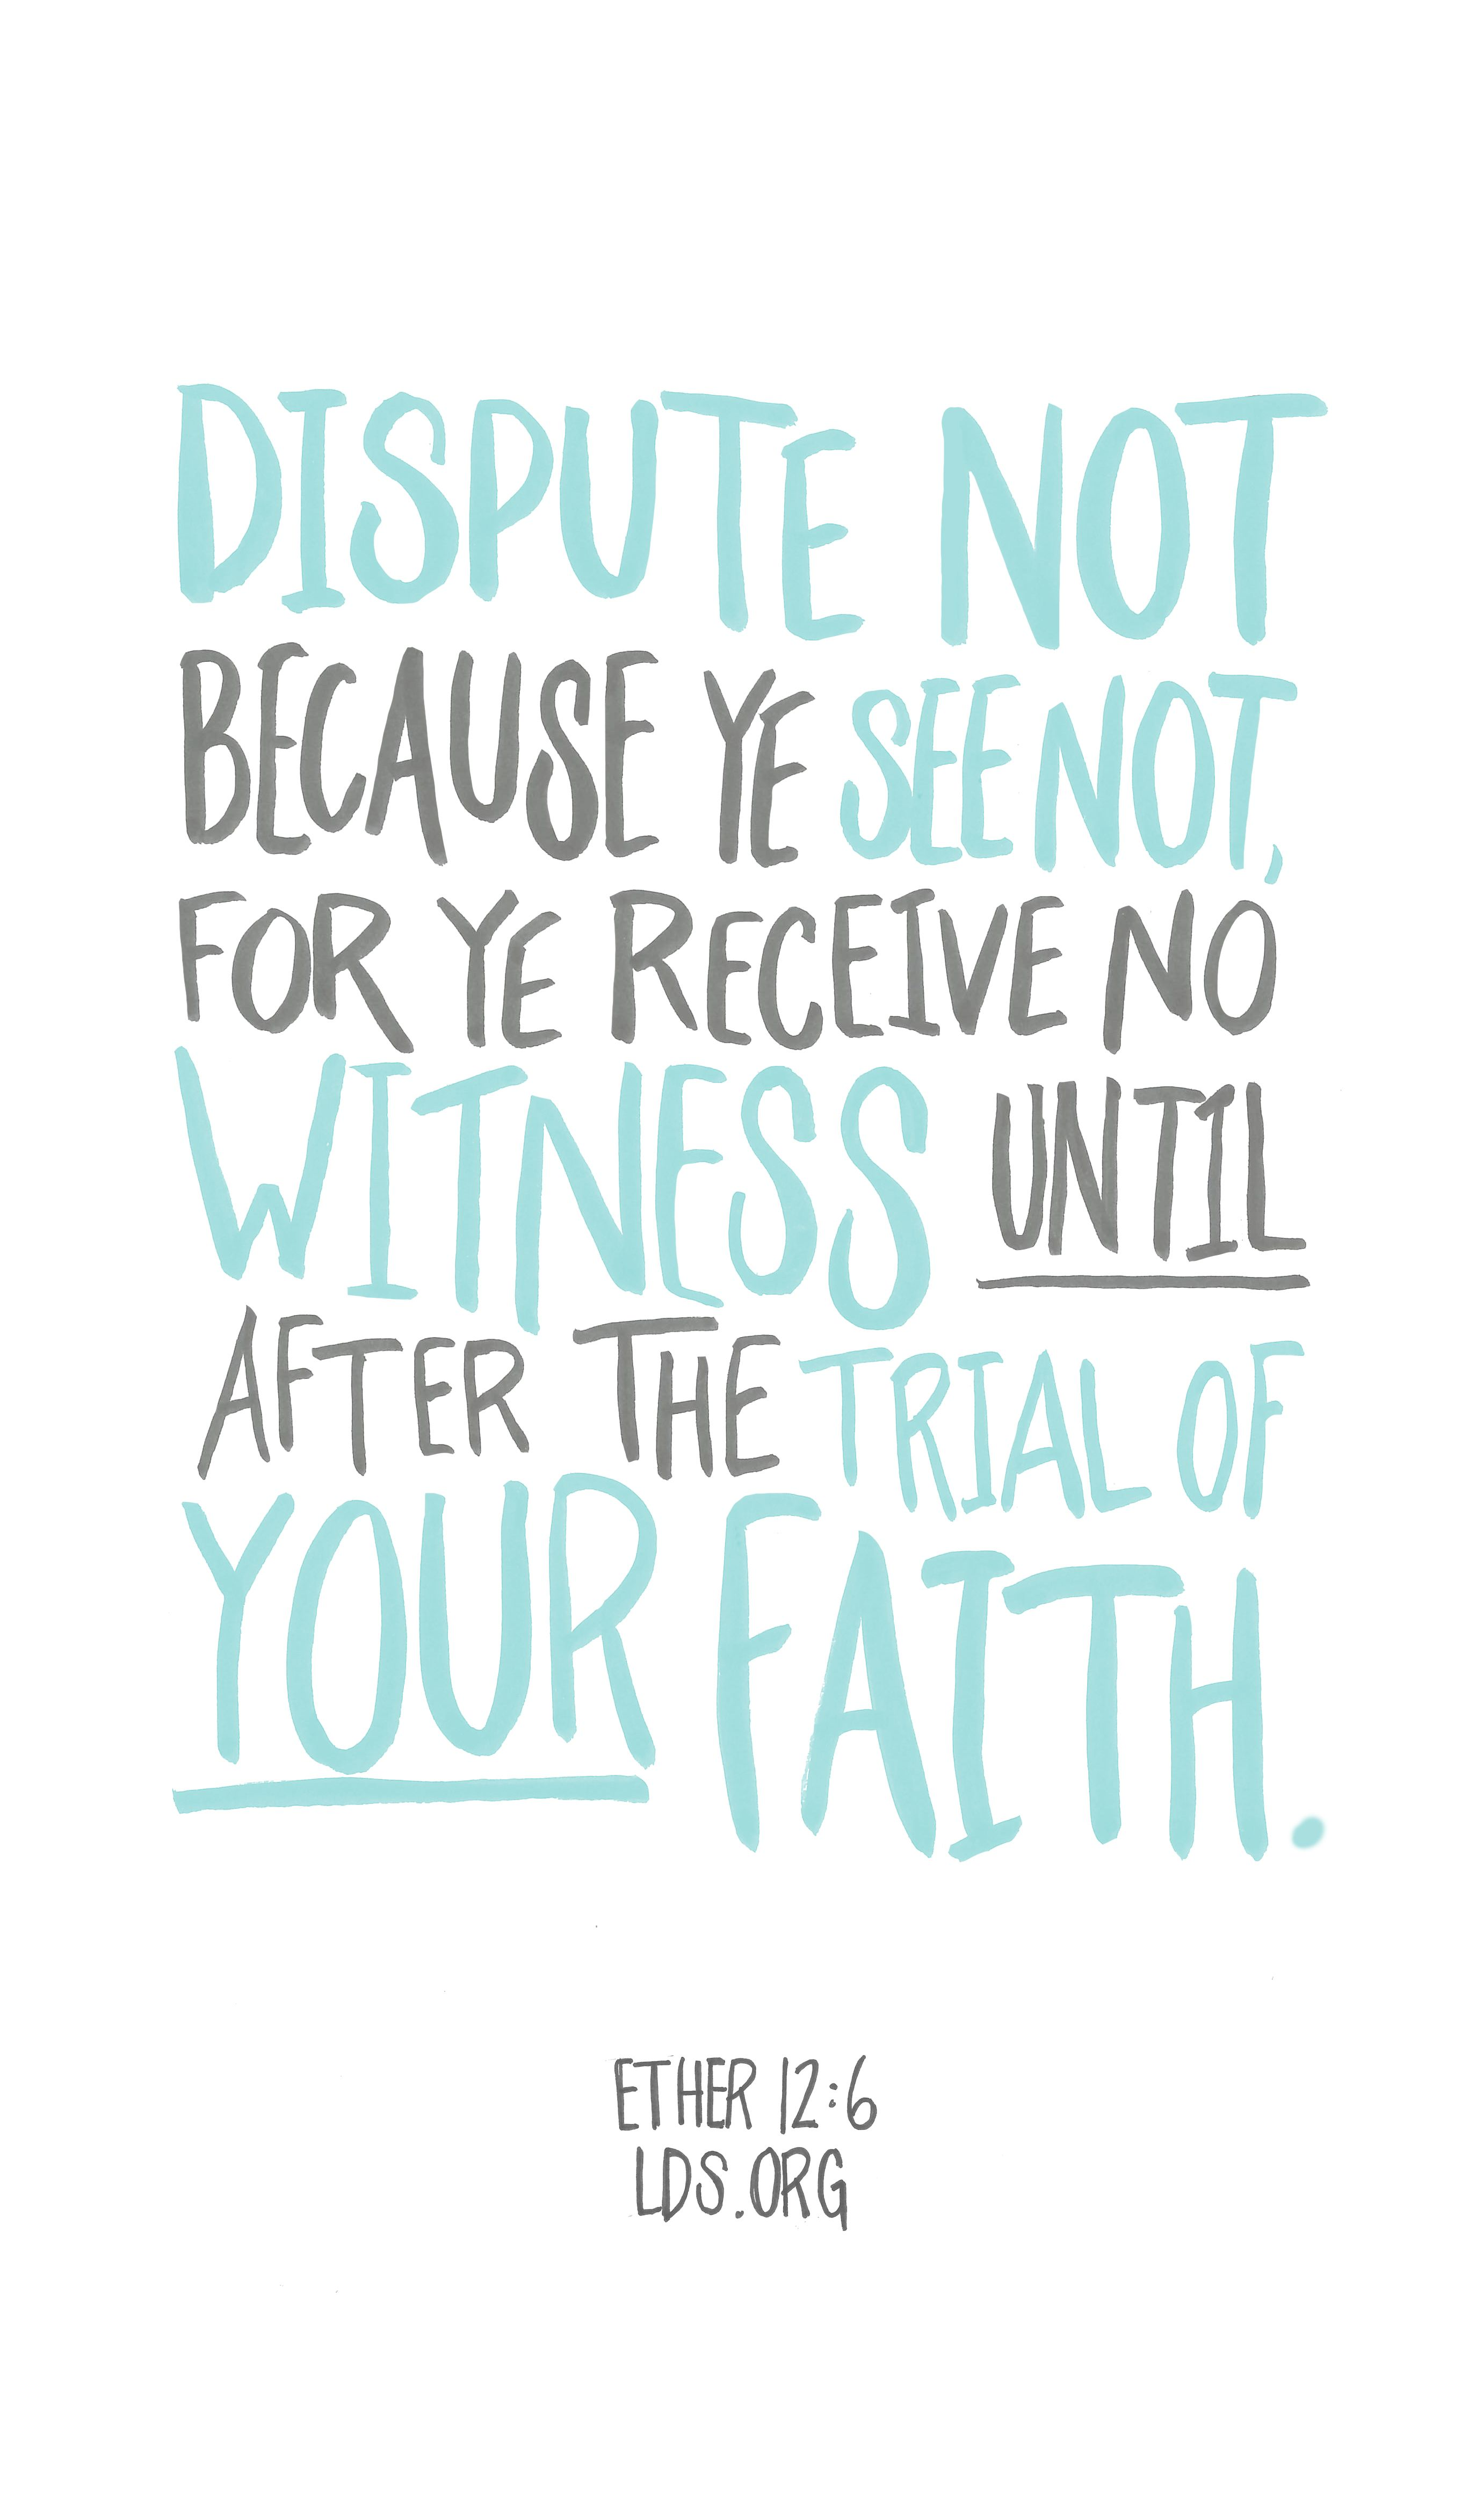 Mormon Quotes Dispute Not Because Ye See Not For Ye Receive No Witness Until